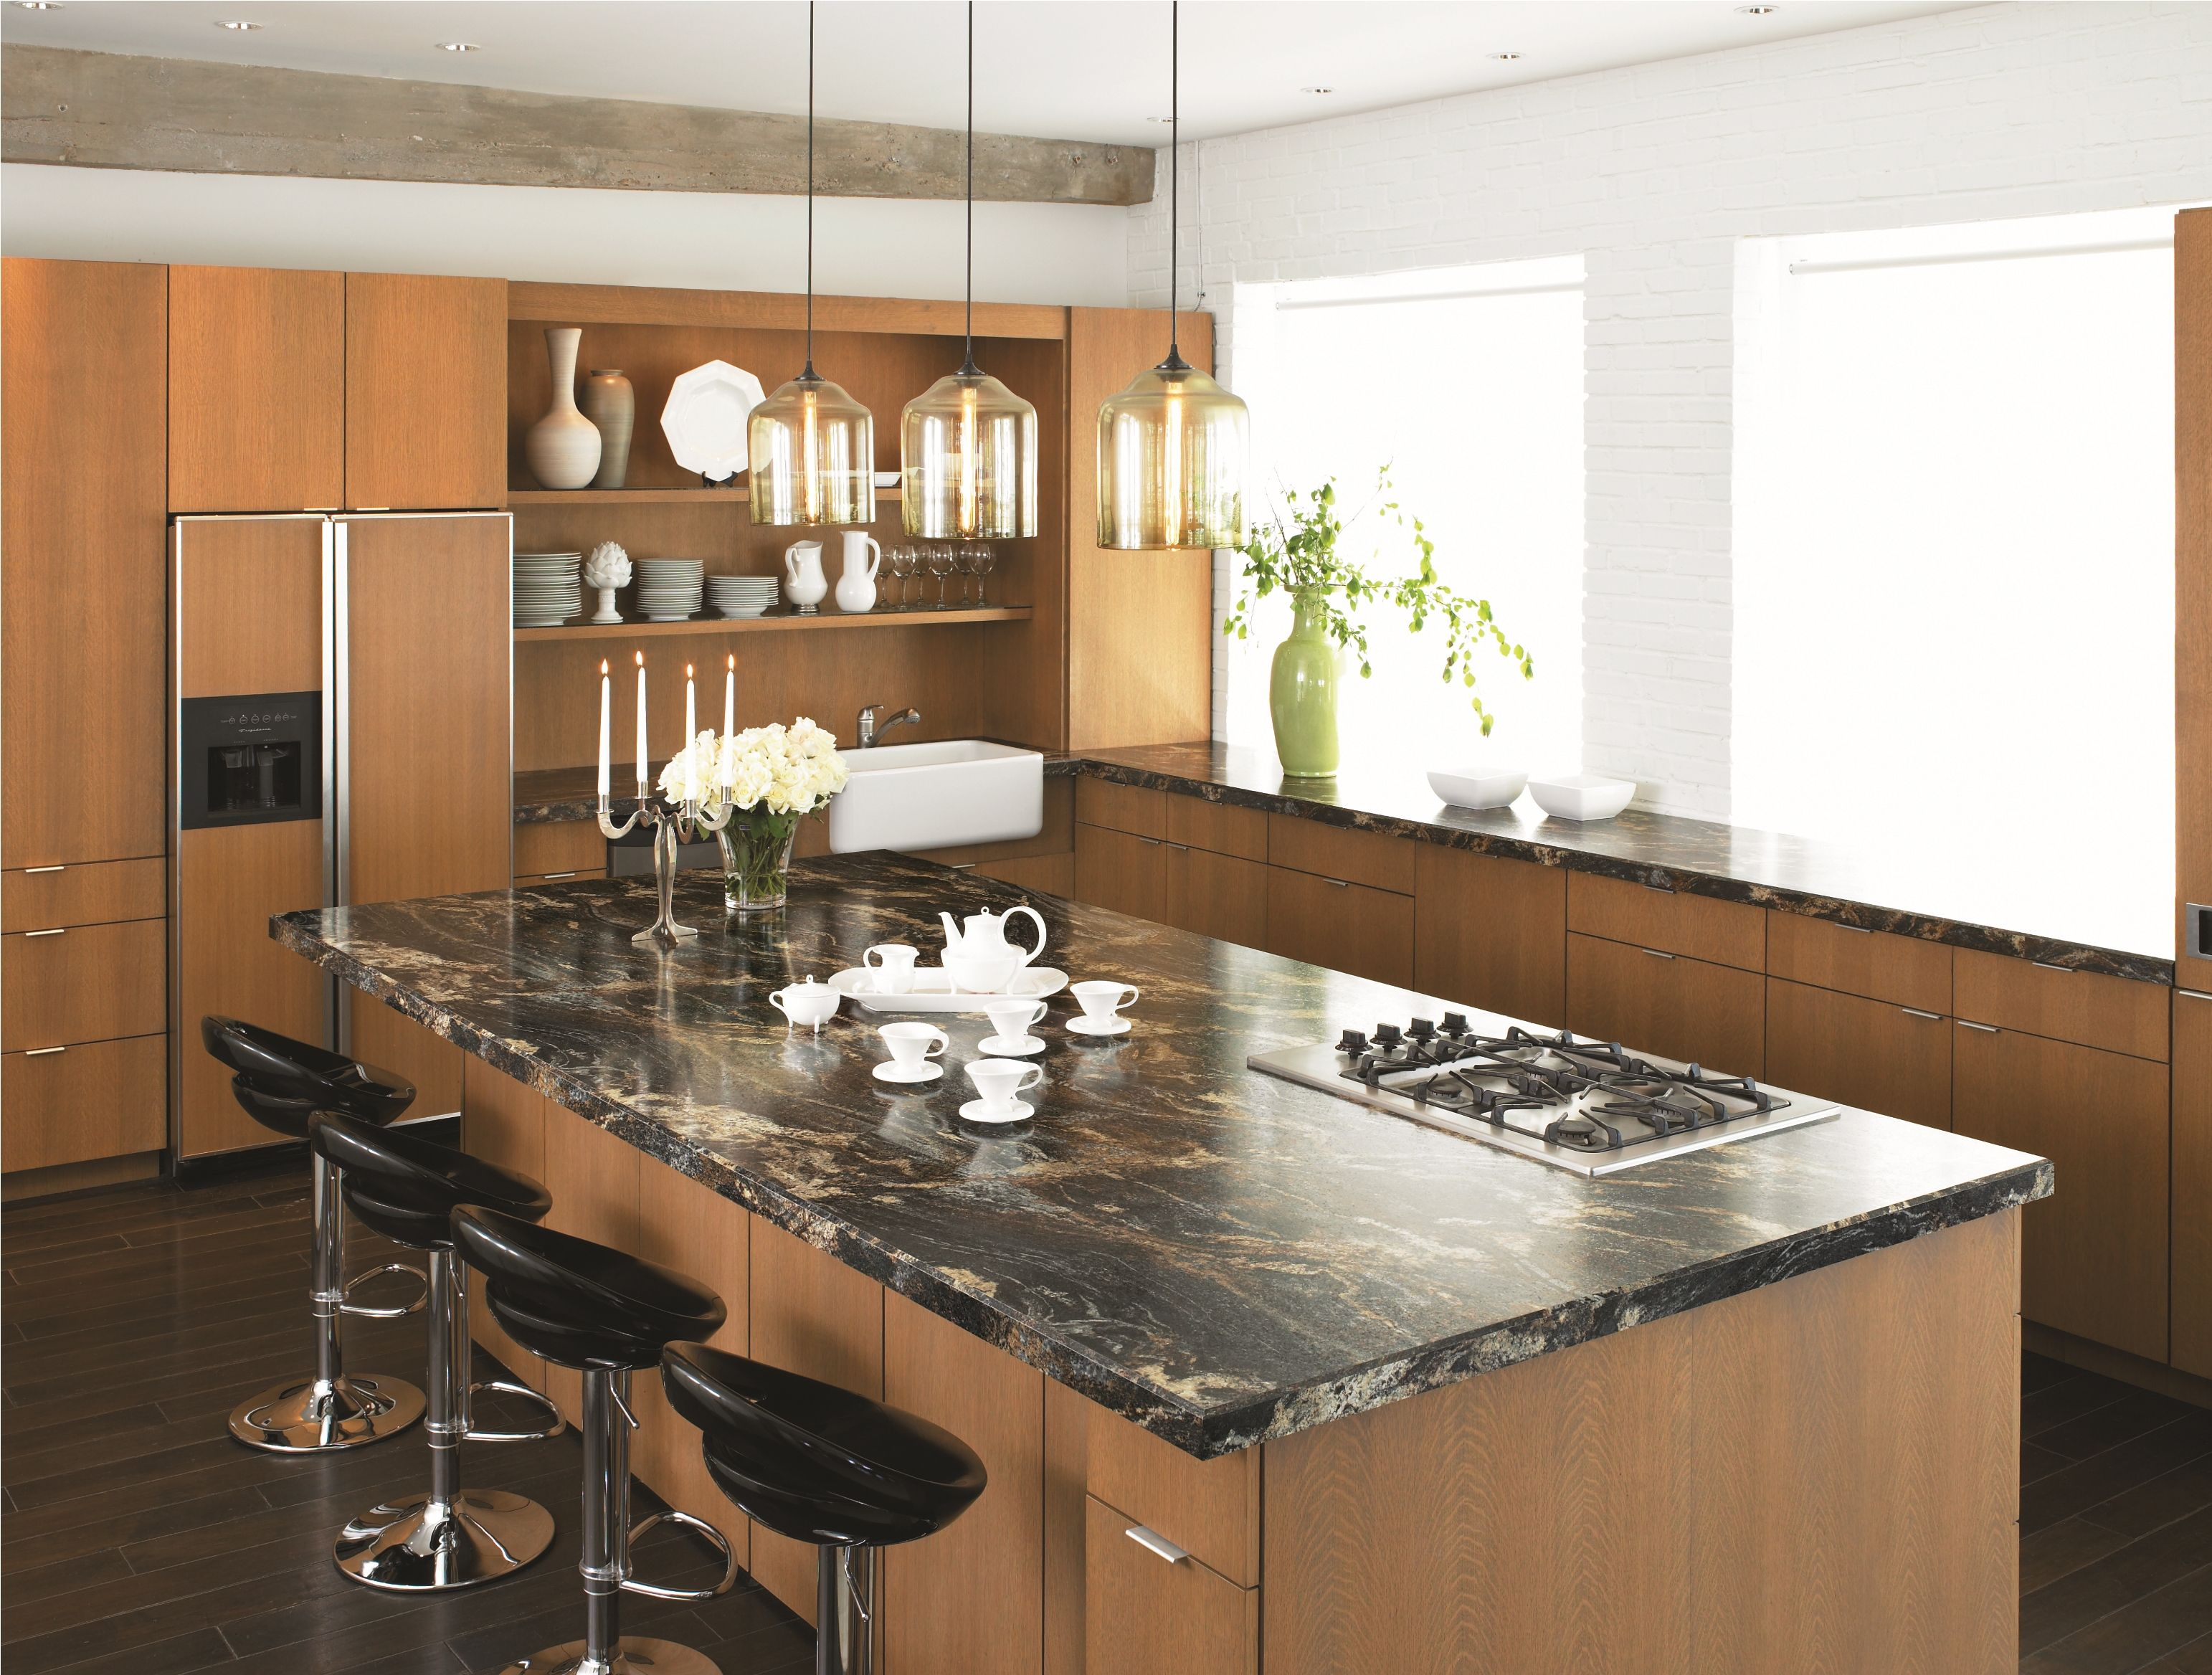 Awesome Image 15 Of 18 From Gallery Of Glossy And Clean Kitchen Countertop Design  Ideas. Stunning Modern Kitchen Features Brown Storm Glossy Laminate  Countertops ...